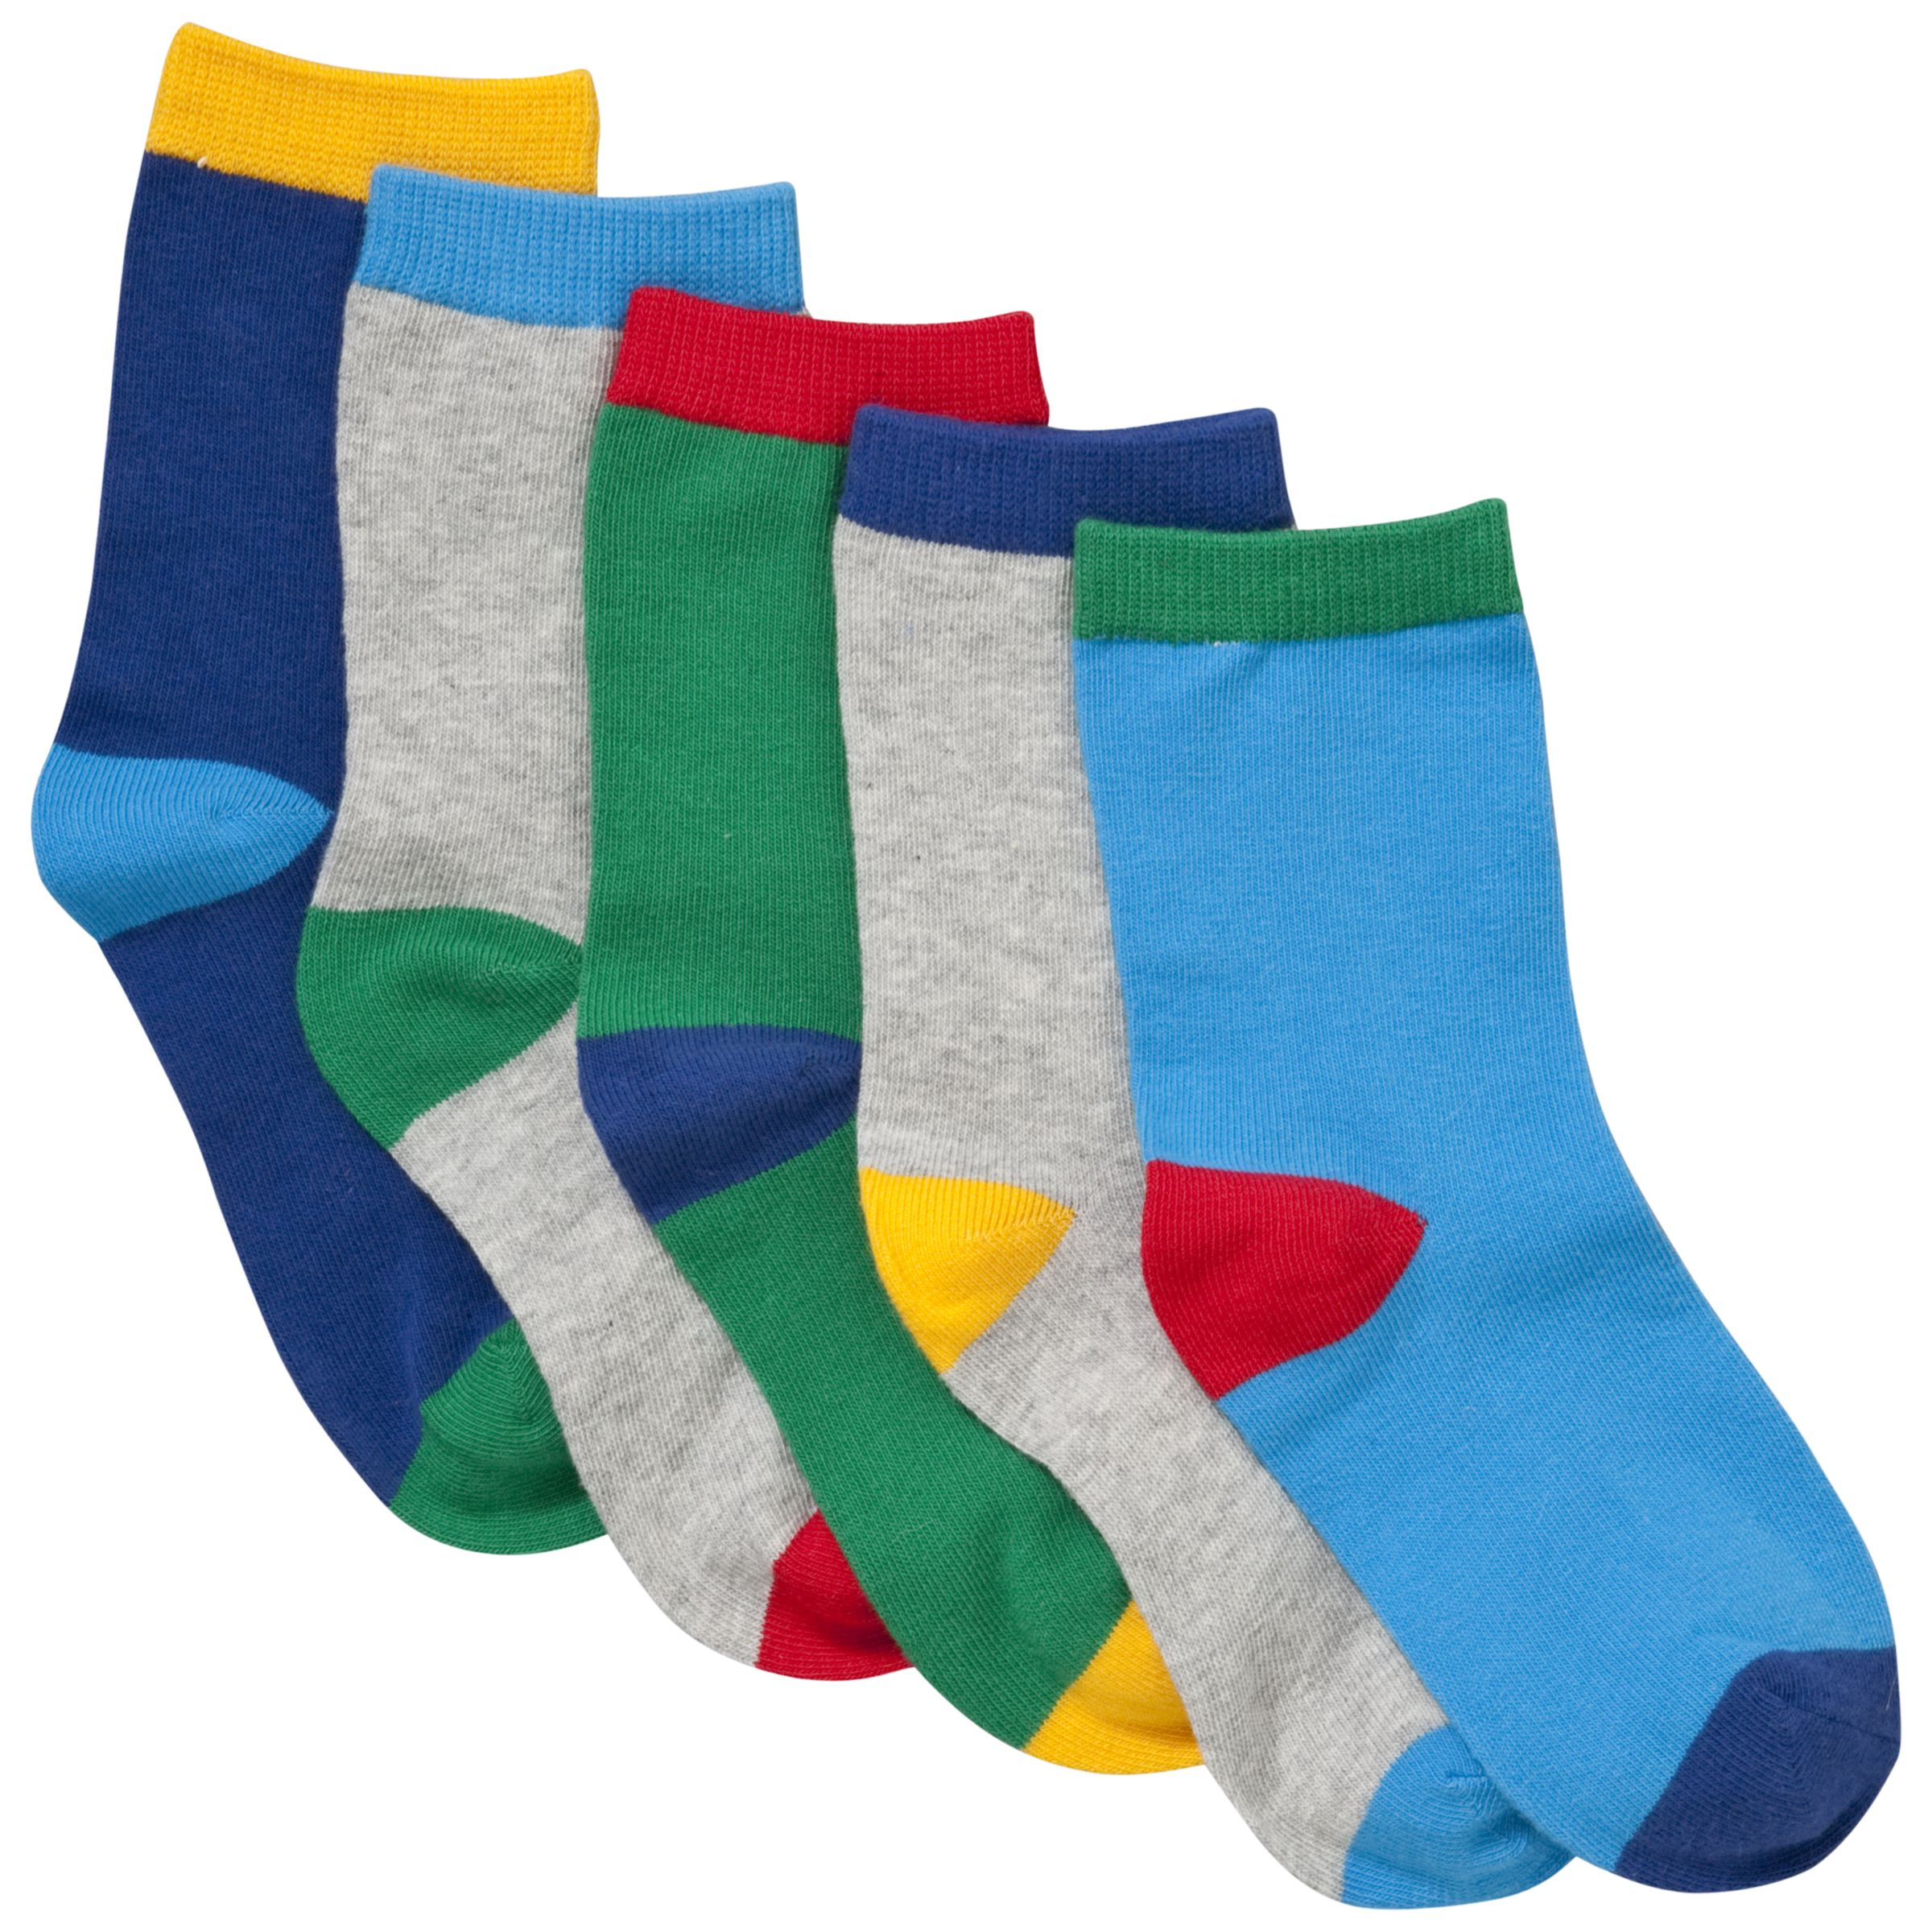 John Lewis Boy Bright Socks, Pack of 5, Multi